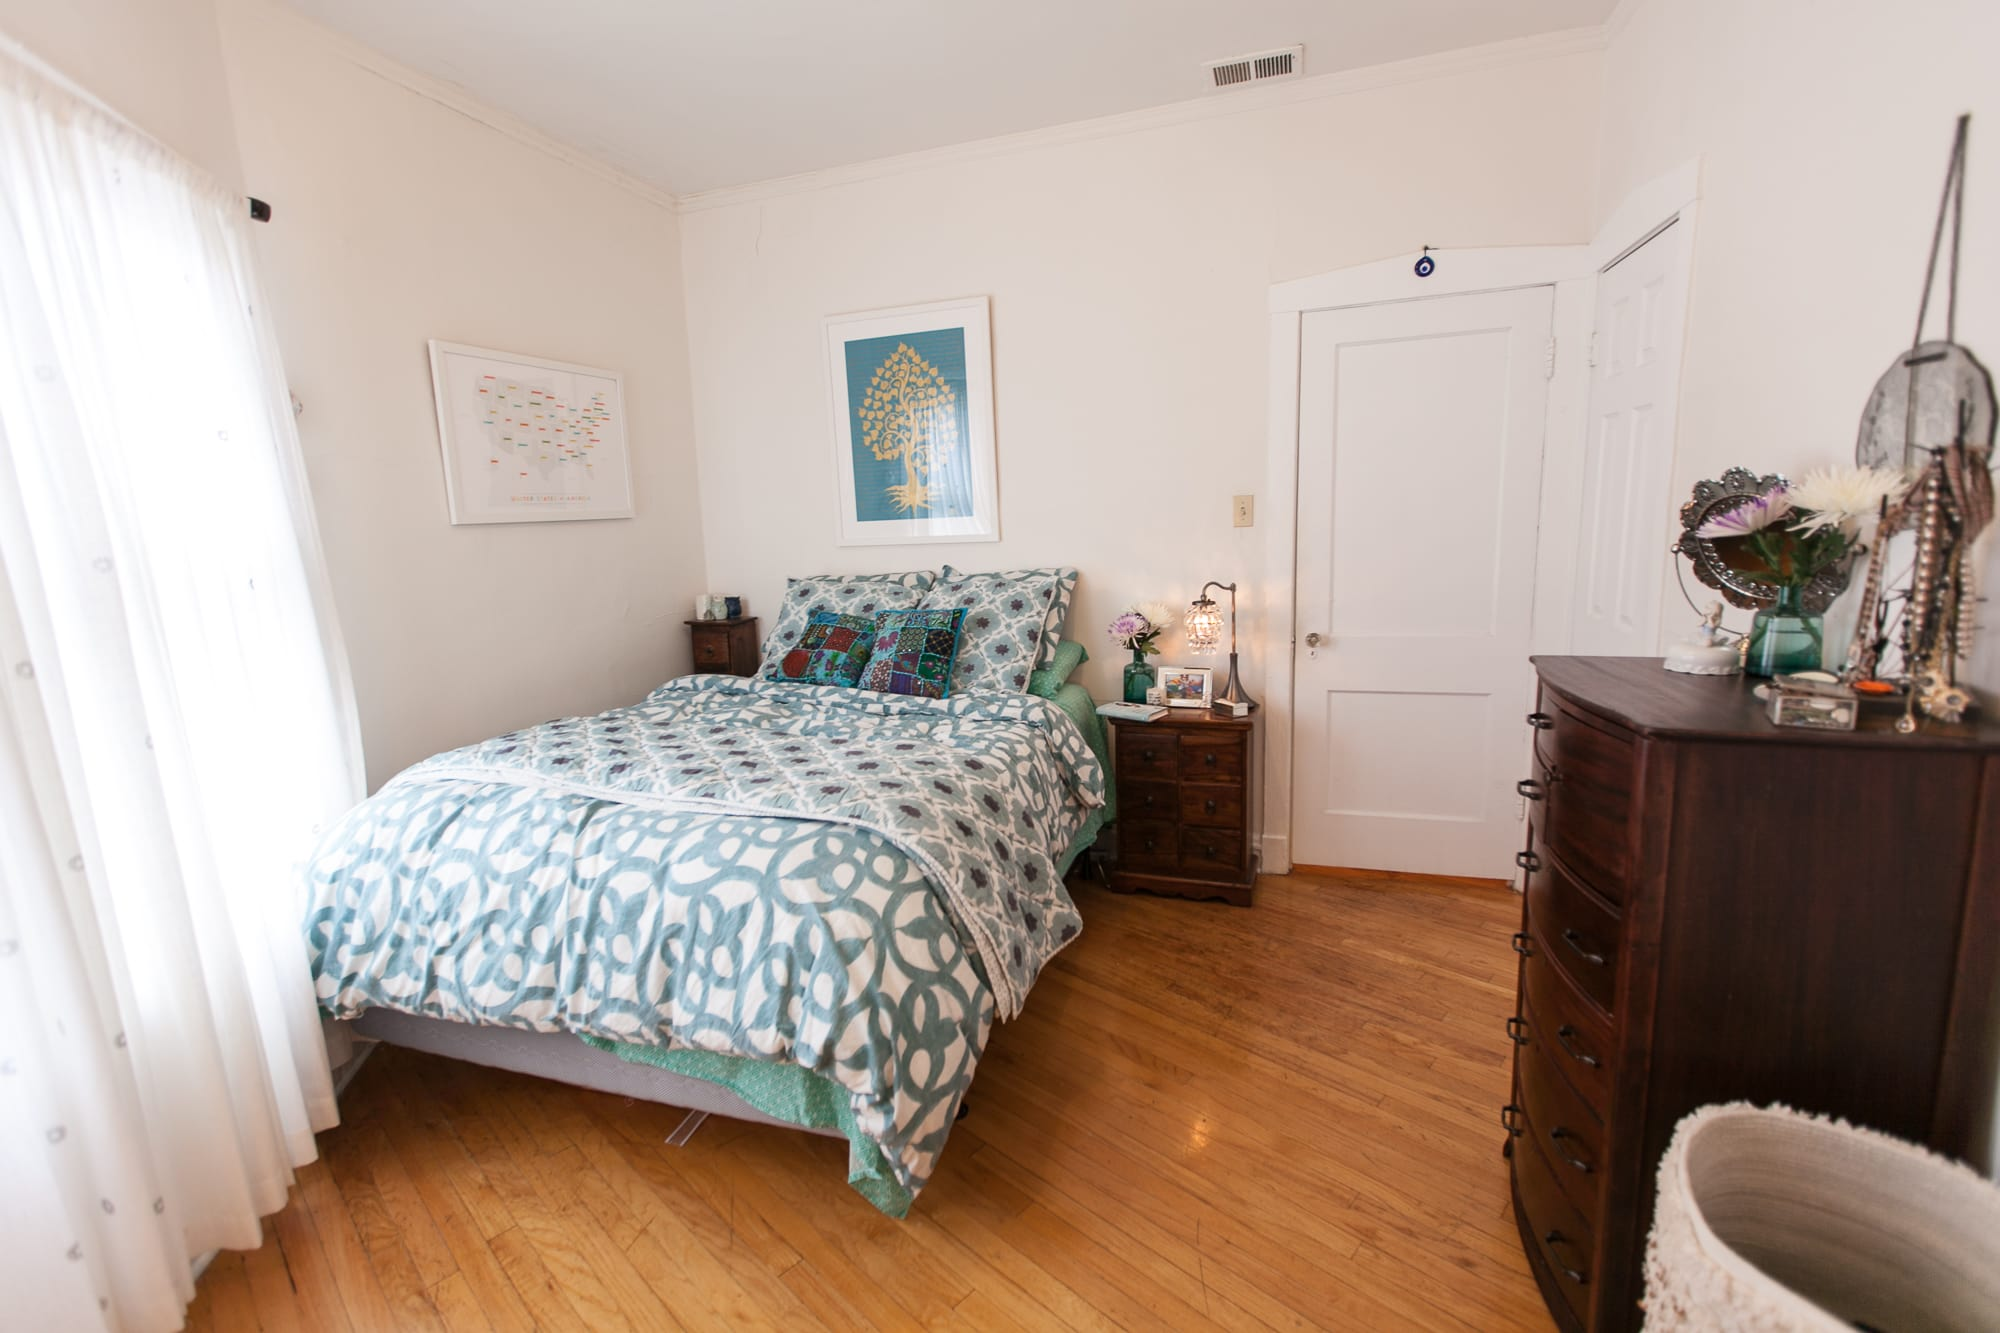 White and teal boho bedroom.